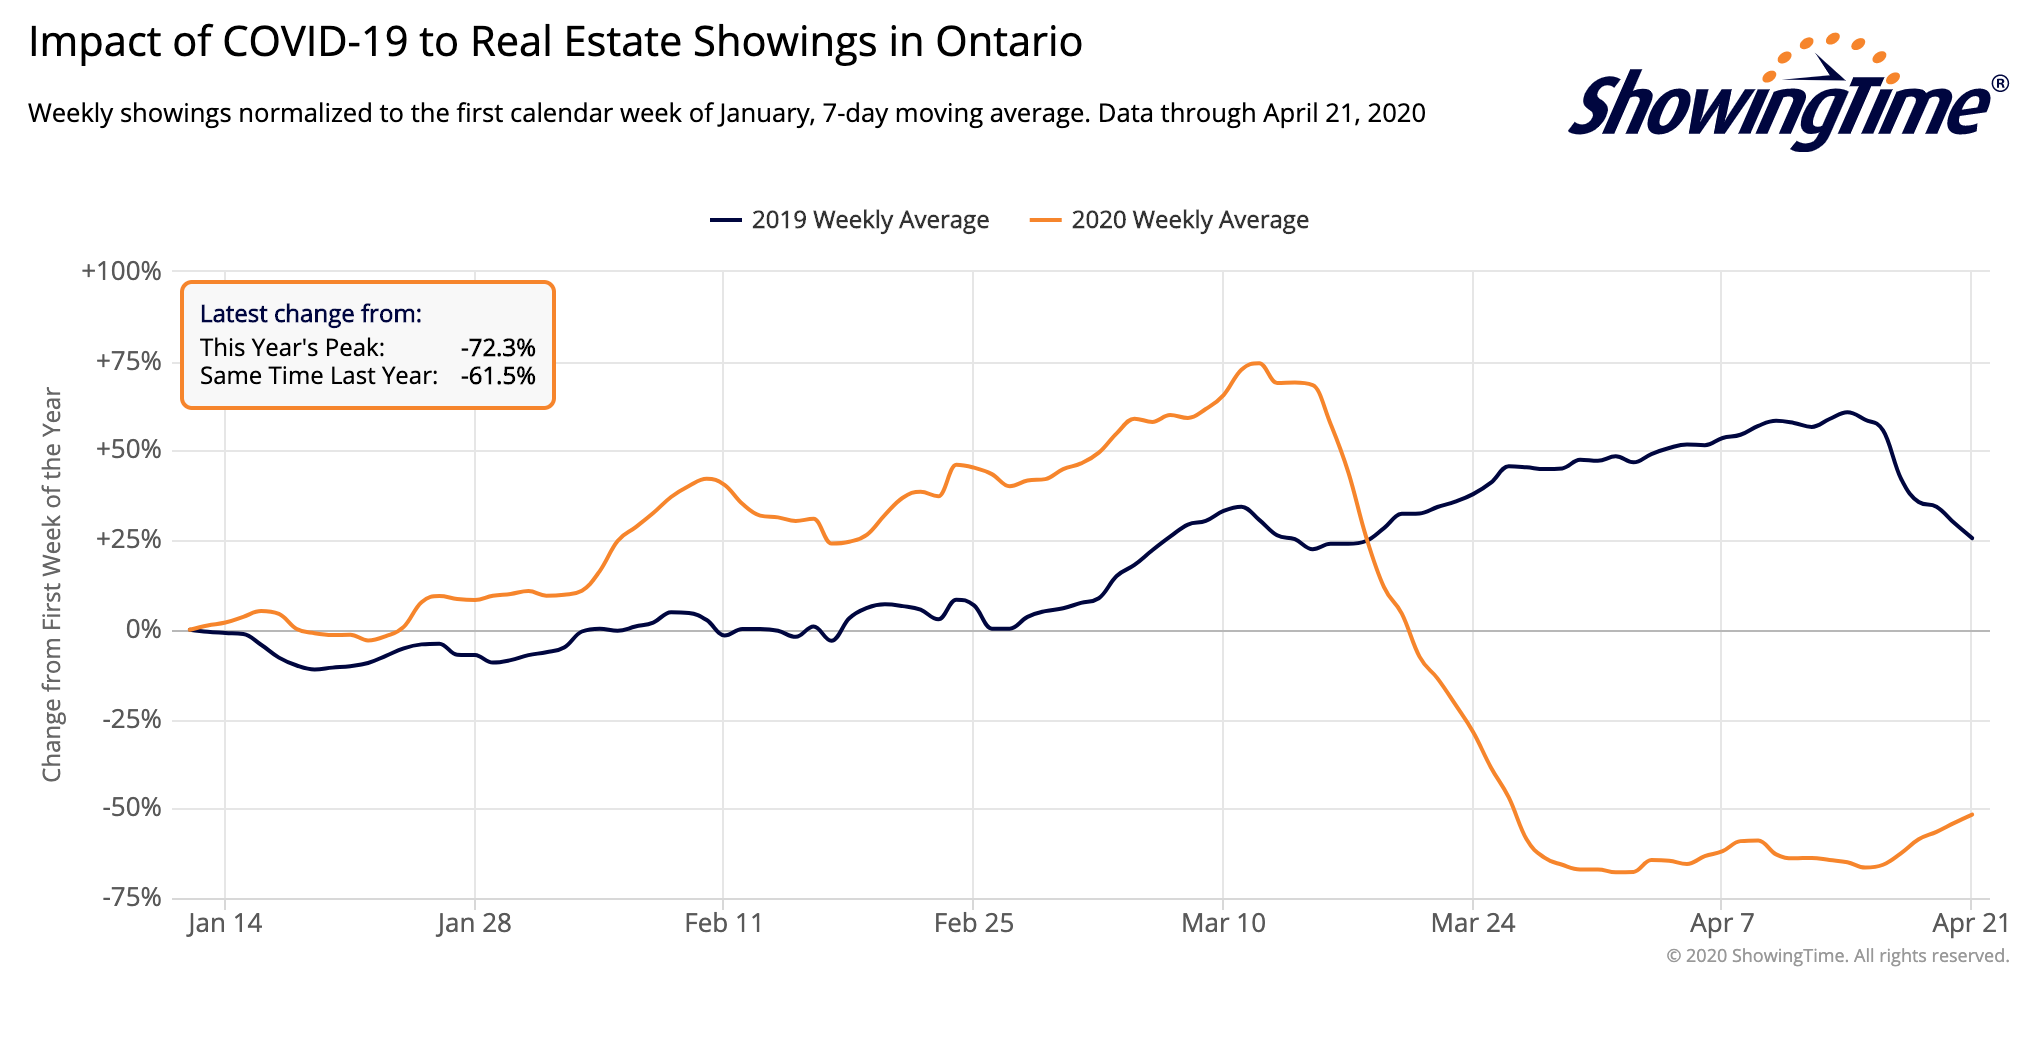 Impact of Covid-19 Real Estate Showings in Ontario